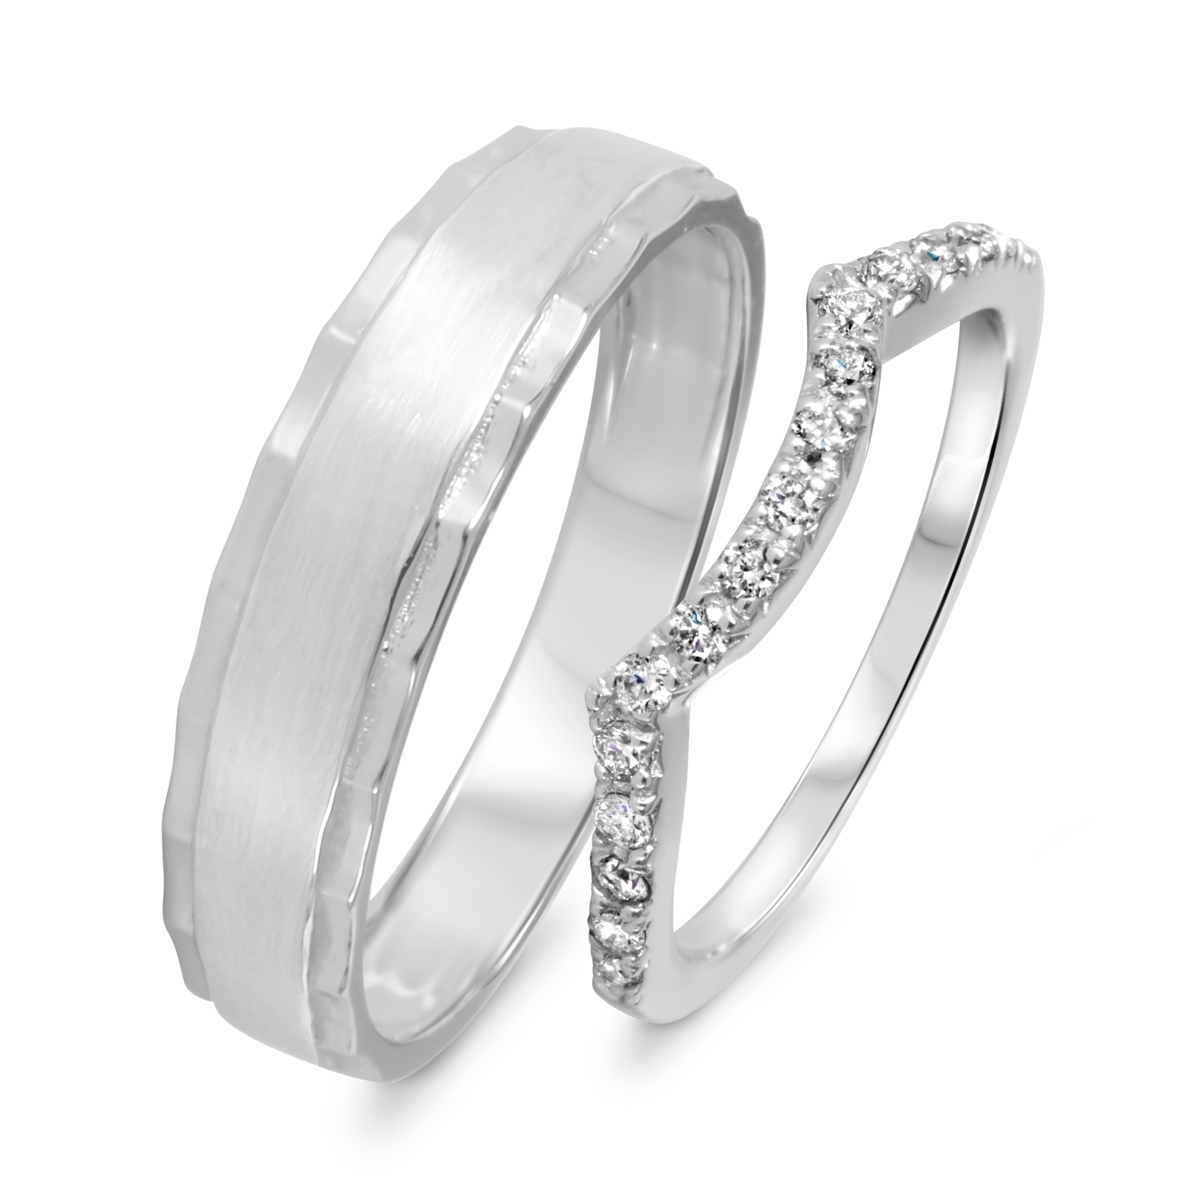 1/3 Carat T.W. Round Cut Diamond His And Hers Wedding Band Set 10K White Gold-